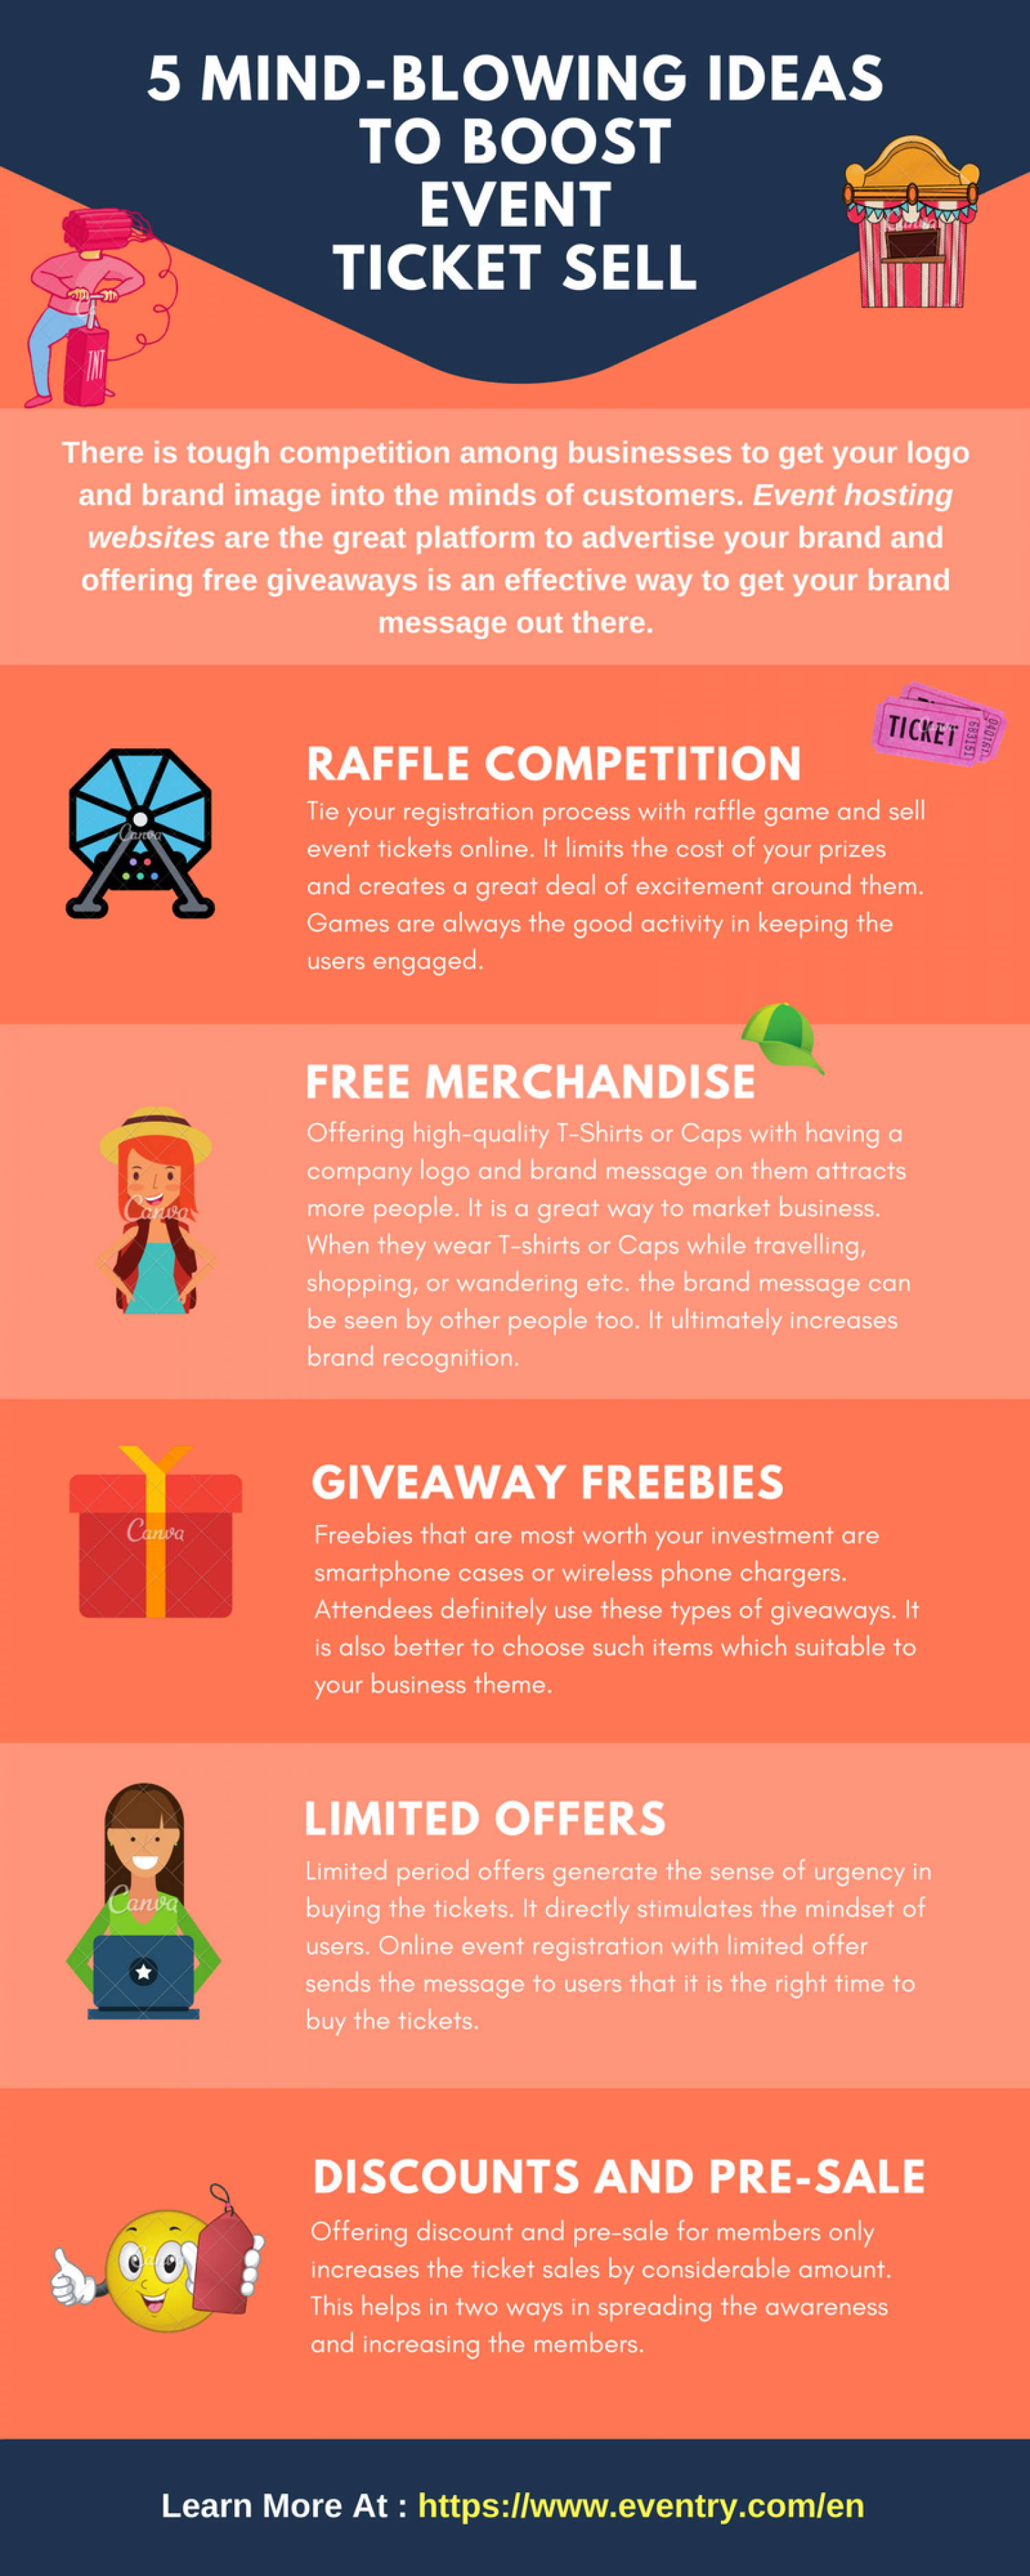 5 Mind-Blowing Ideas To Boost Event Ticket Sell. Infographic